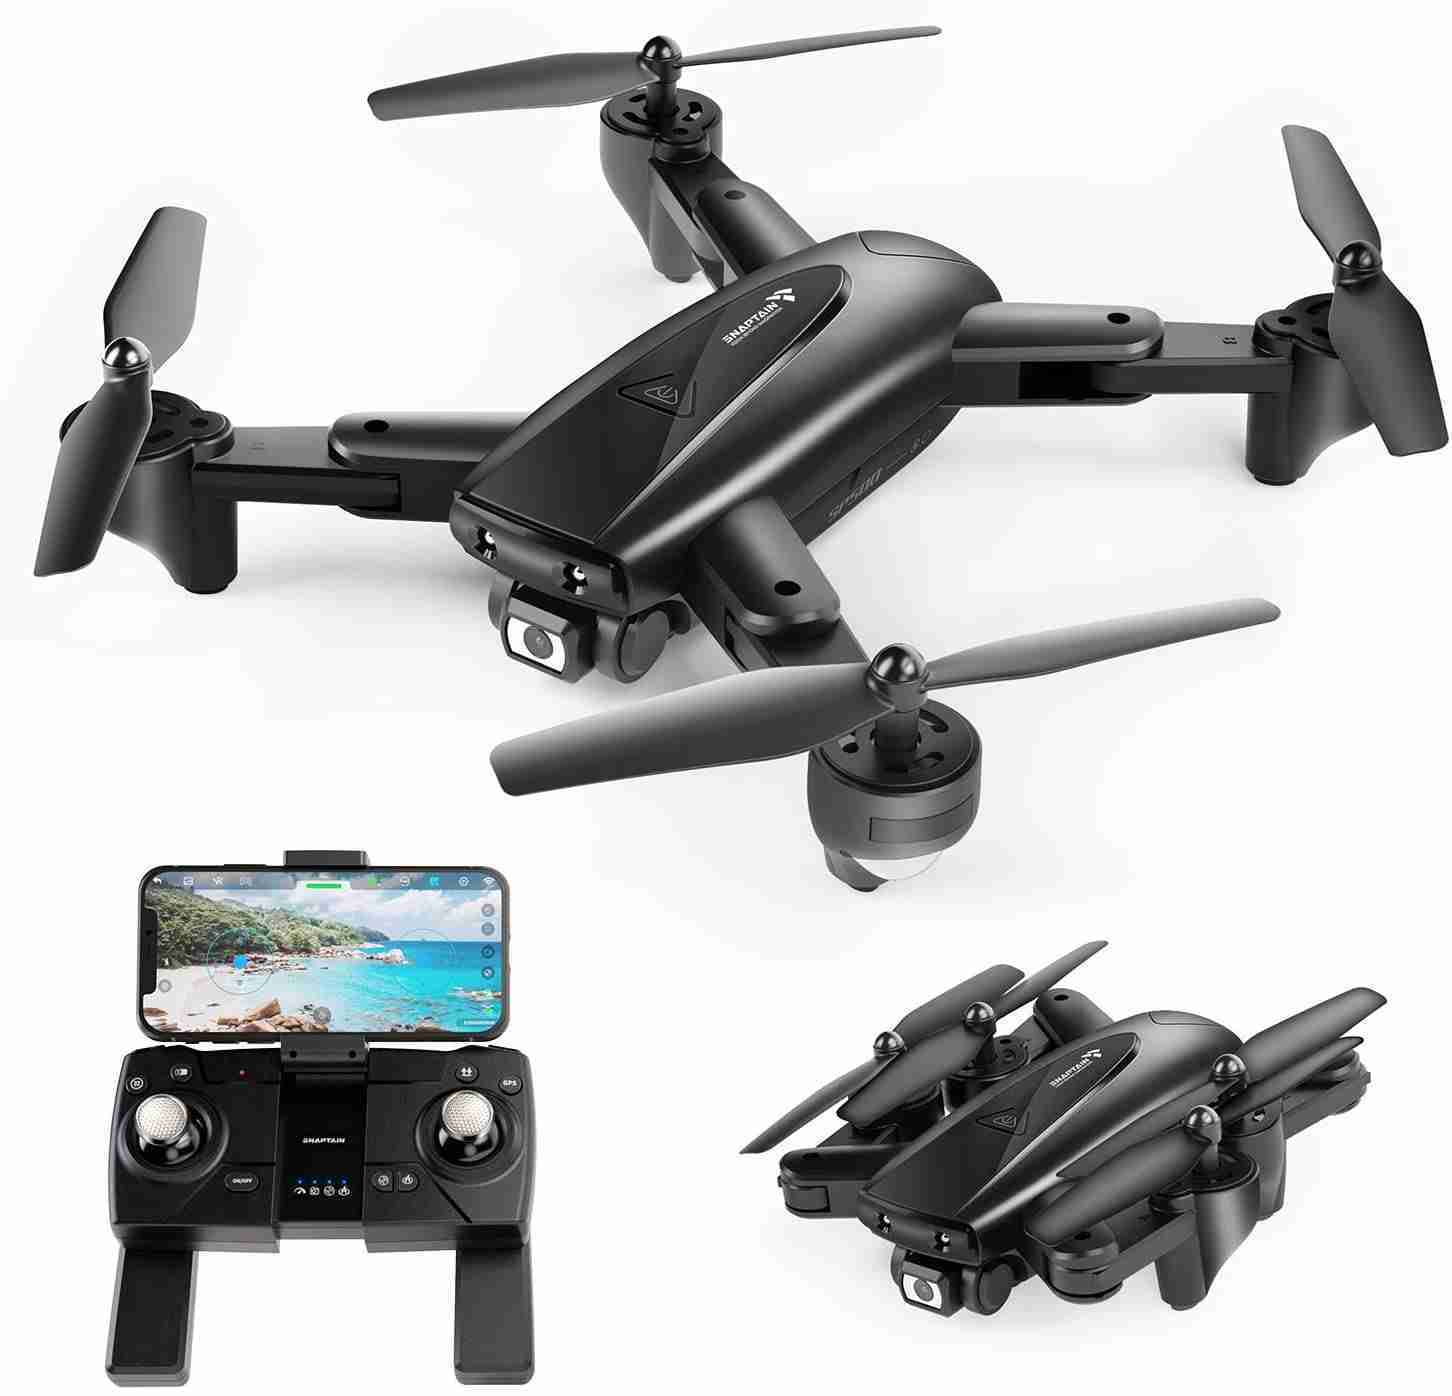 SNAPTAIN SP500 Drone